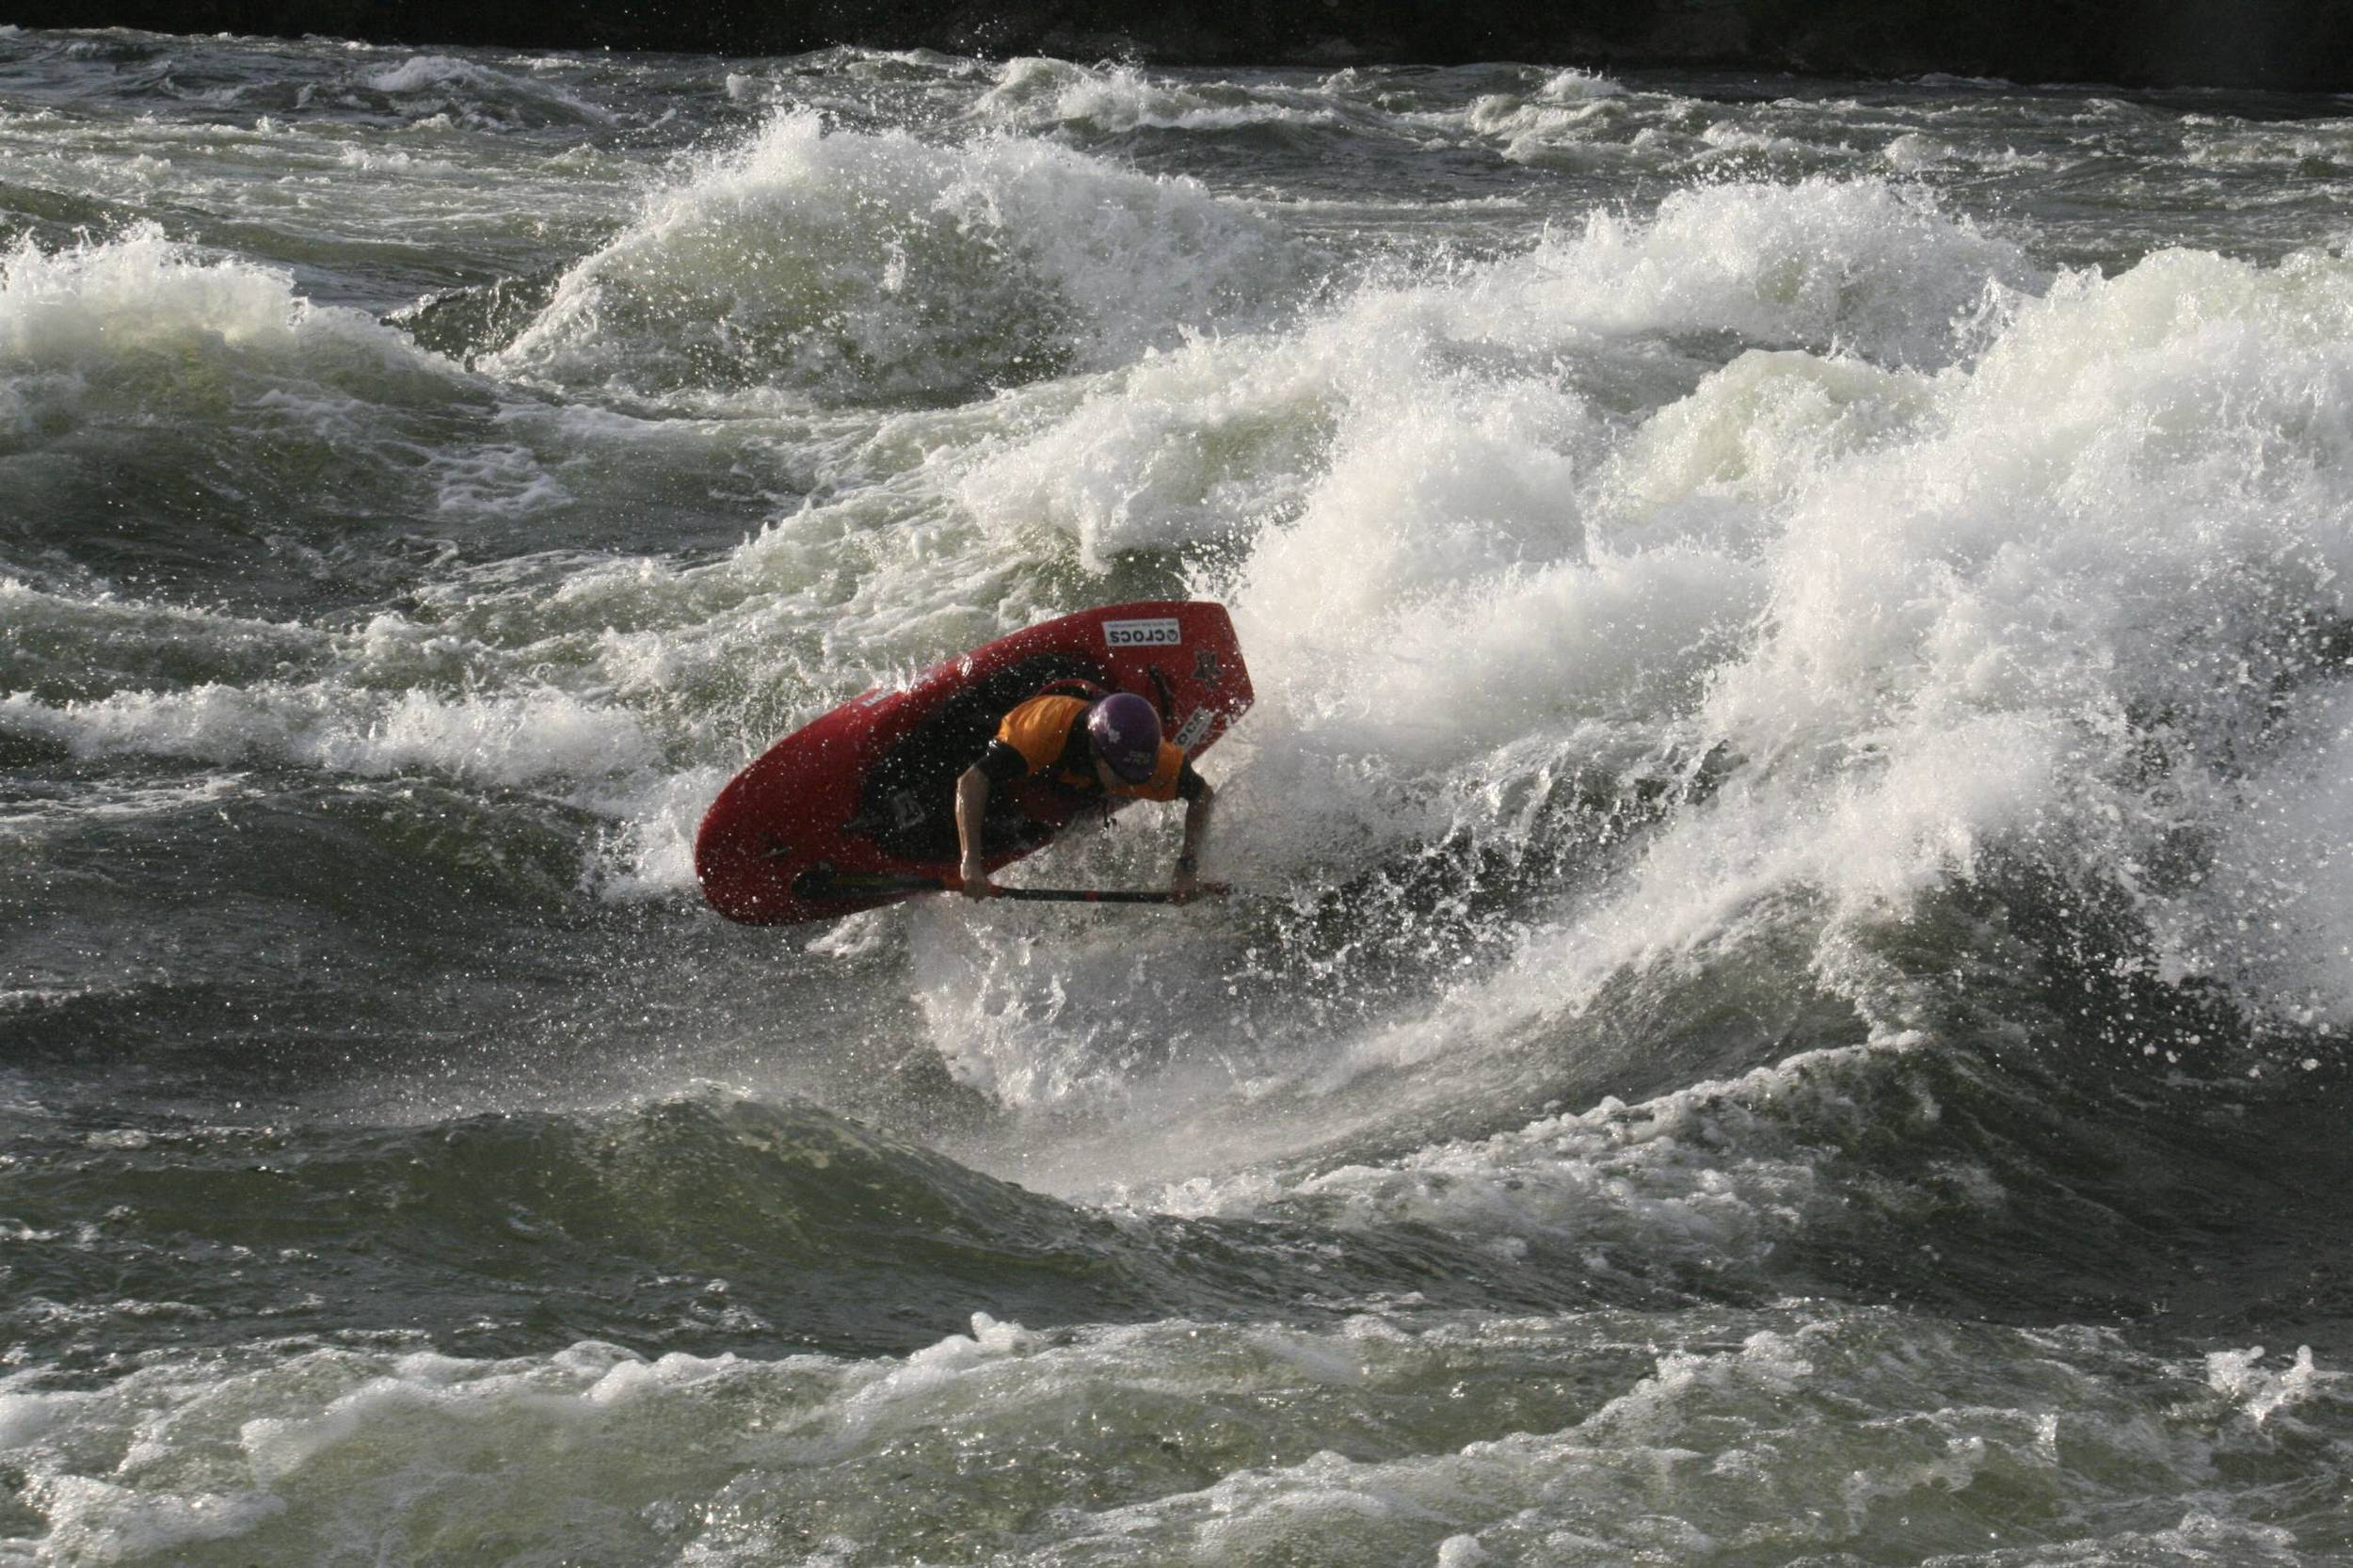 Here's Jessie in action. When in Africa she often trains in a whitewater section of the Nile.